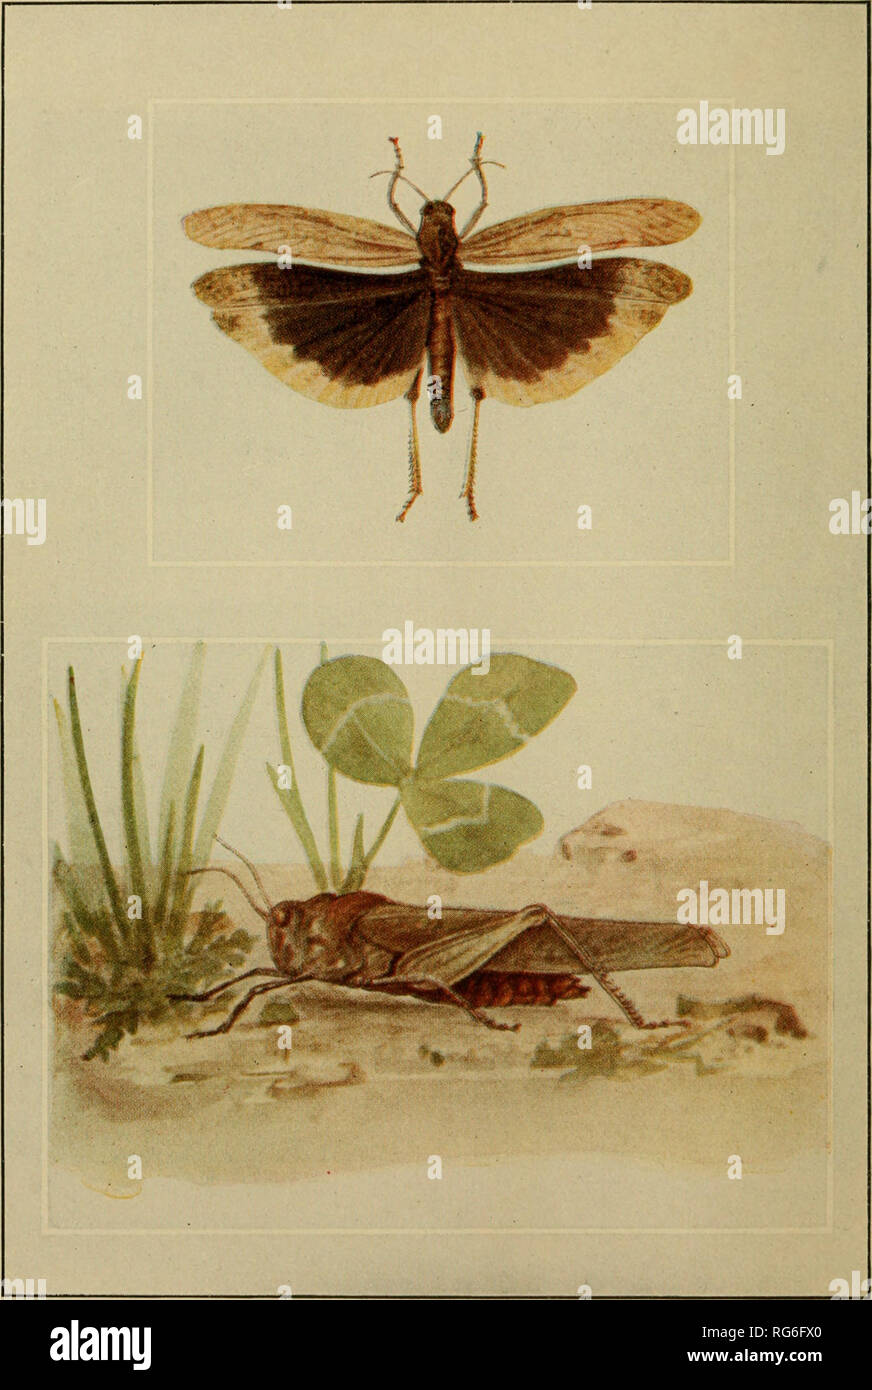 . Butterflies worth knowing. Butterflies. See page ou THE CAROLINA LOCUST Above, with vinf>;s expanded as in flight. Please note that these images are extracted from scanned page images that may have been digitally enhanced for readability - coloration and appearance of these illustrations may not perfectly resemble the original work.. Weed, Clarence Moores, 1864-1947. [Garden City, N. Y. ] Pub. by Doubleday, Page & Company for Nelson Doubleday - Stock Image